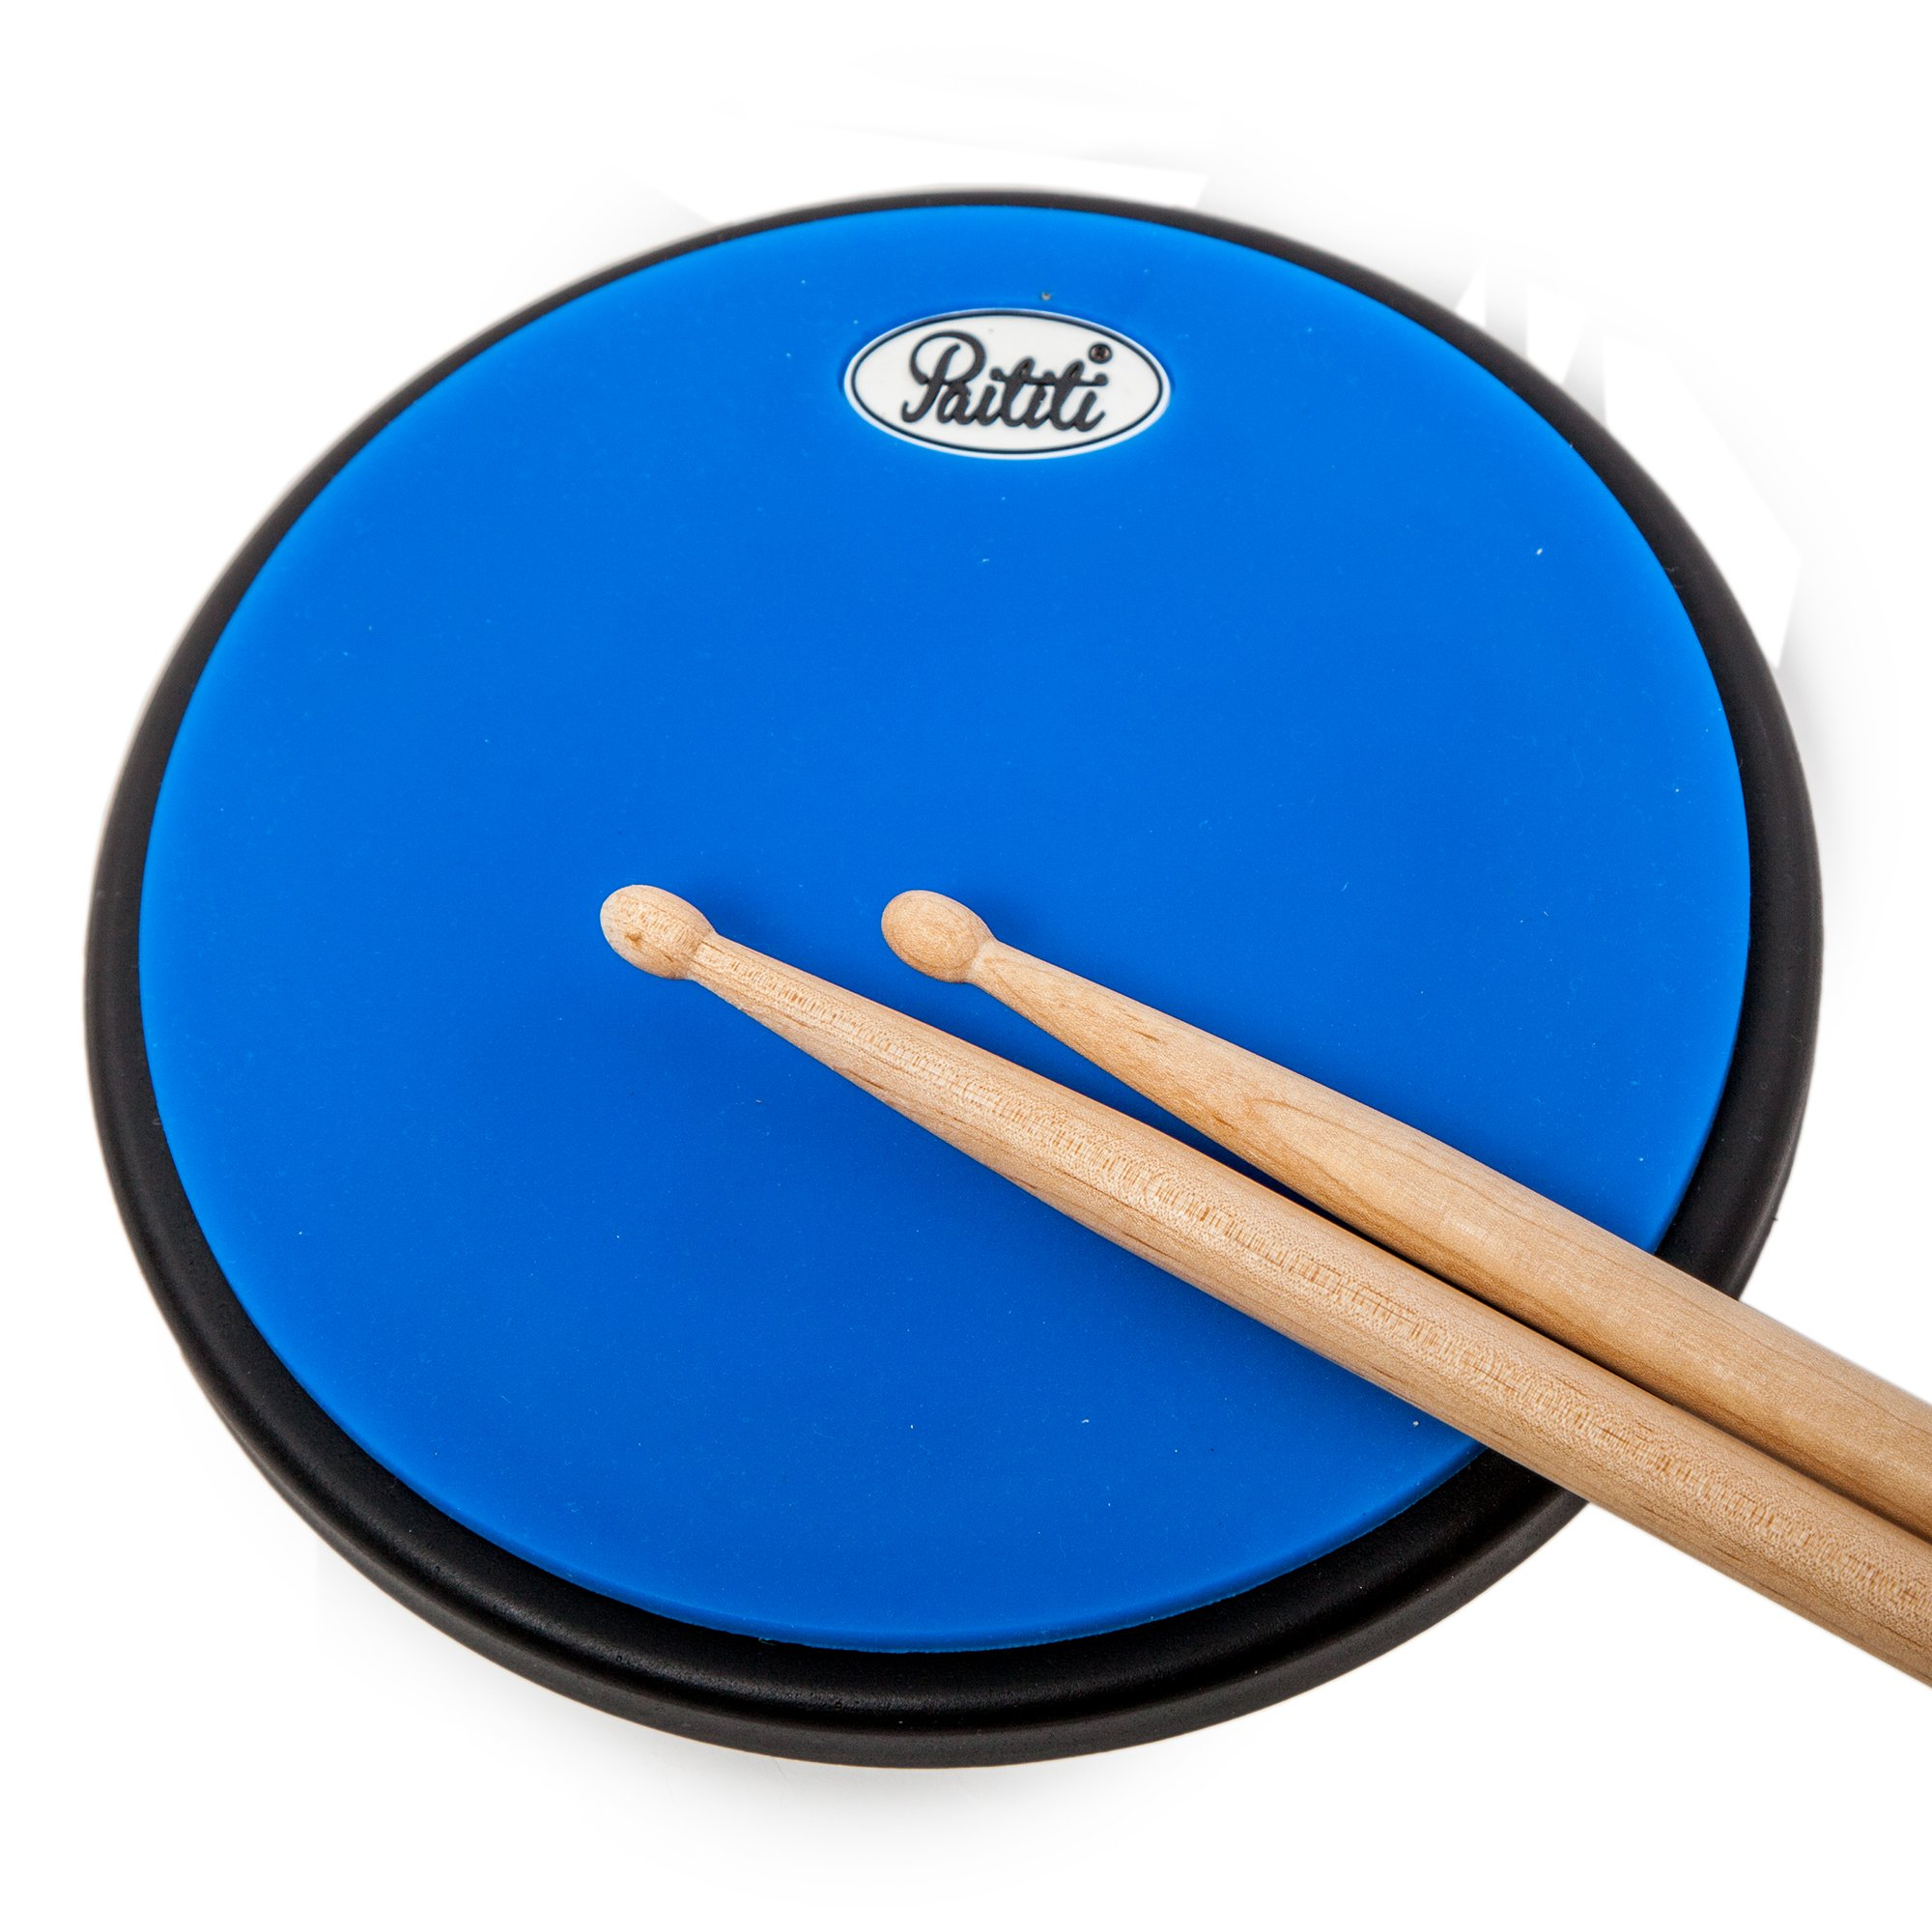 PAITITI 10 Inch Silent Portable Practice Drum Pad Round Shape with Carrying Bag Blue Color by Paititi